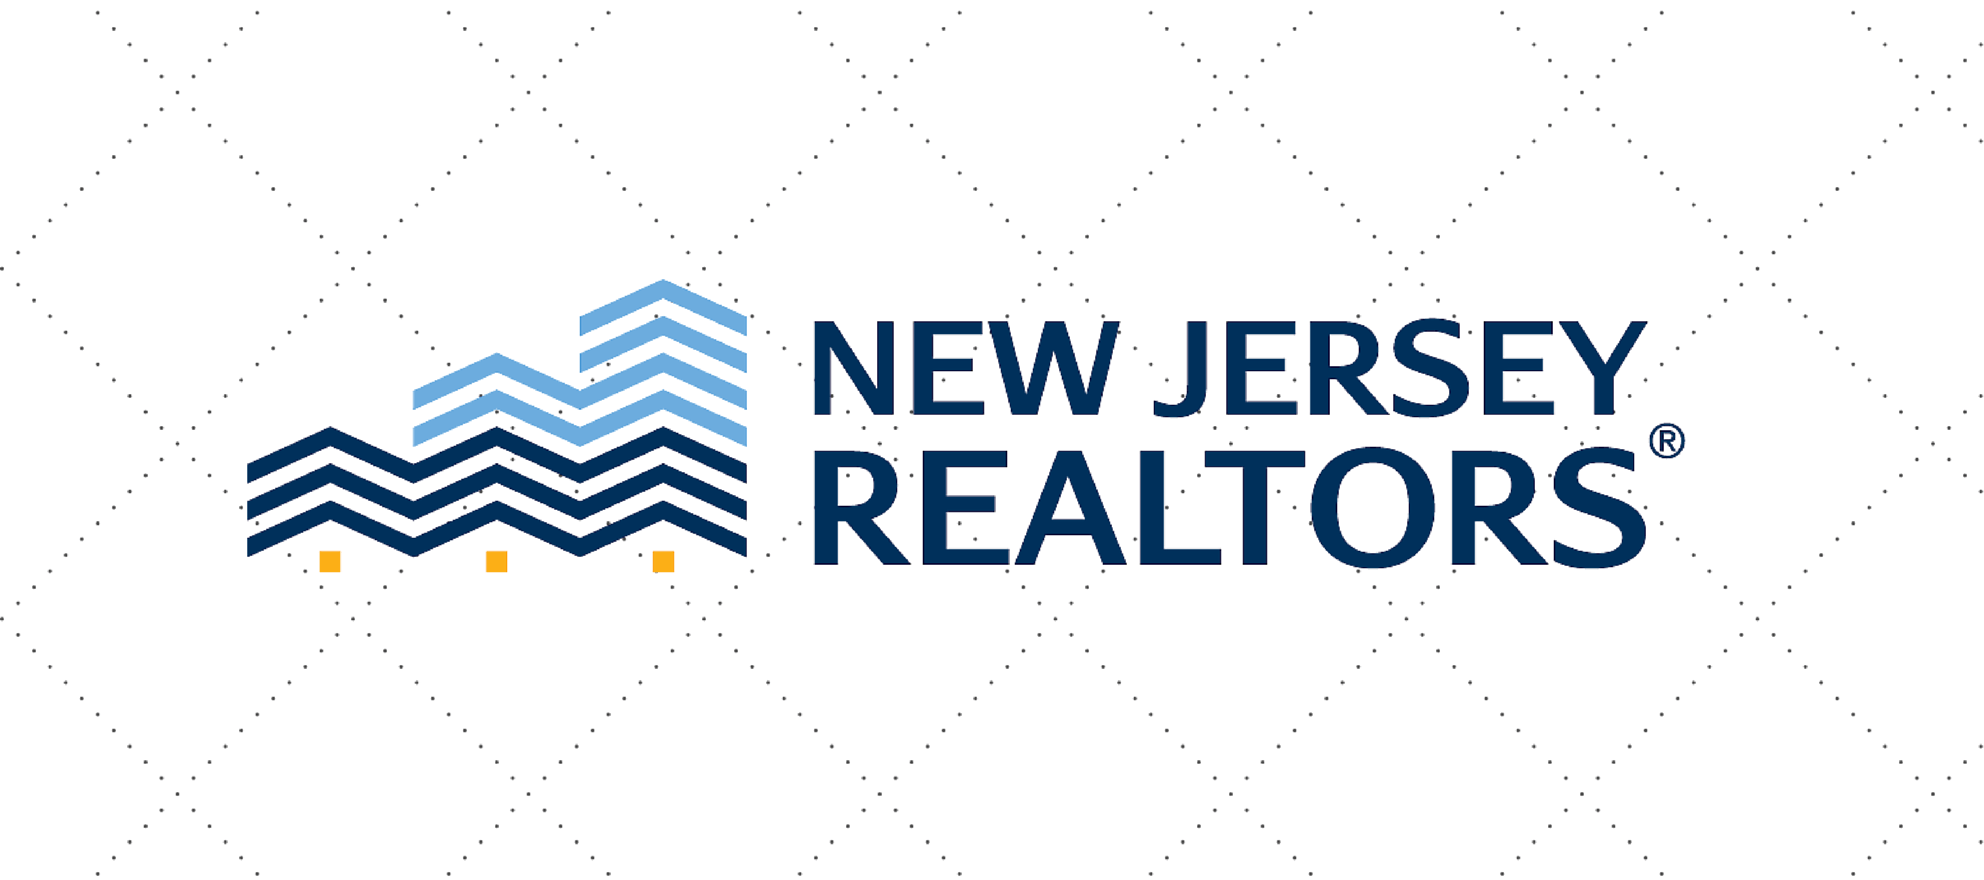 New Jersey's Realtor association rebrands